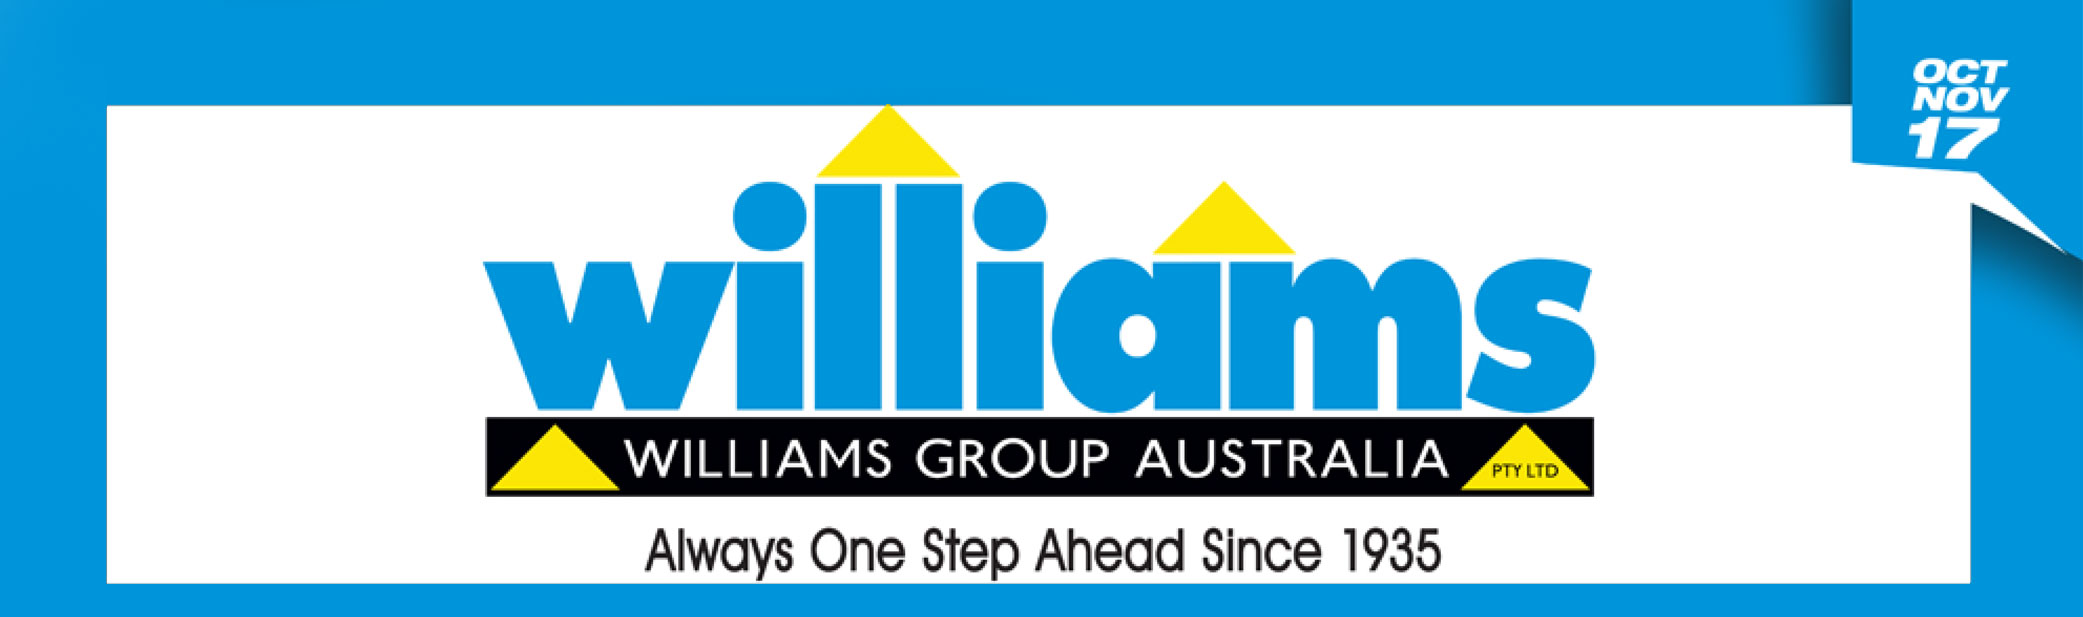 Williams logo banner